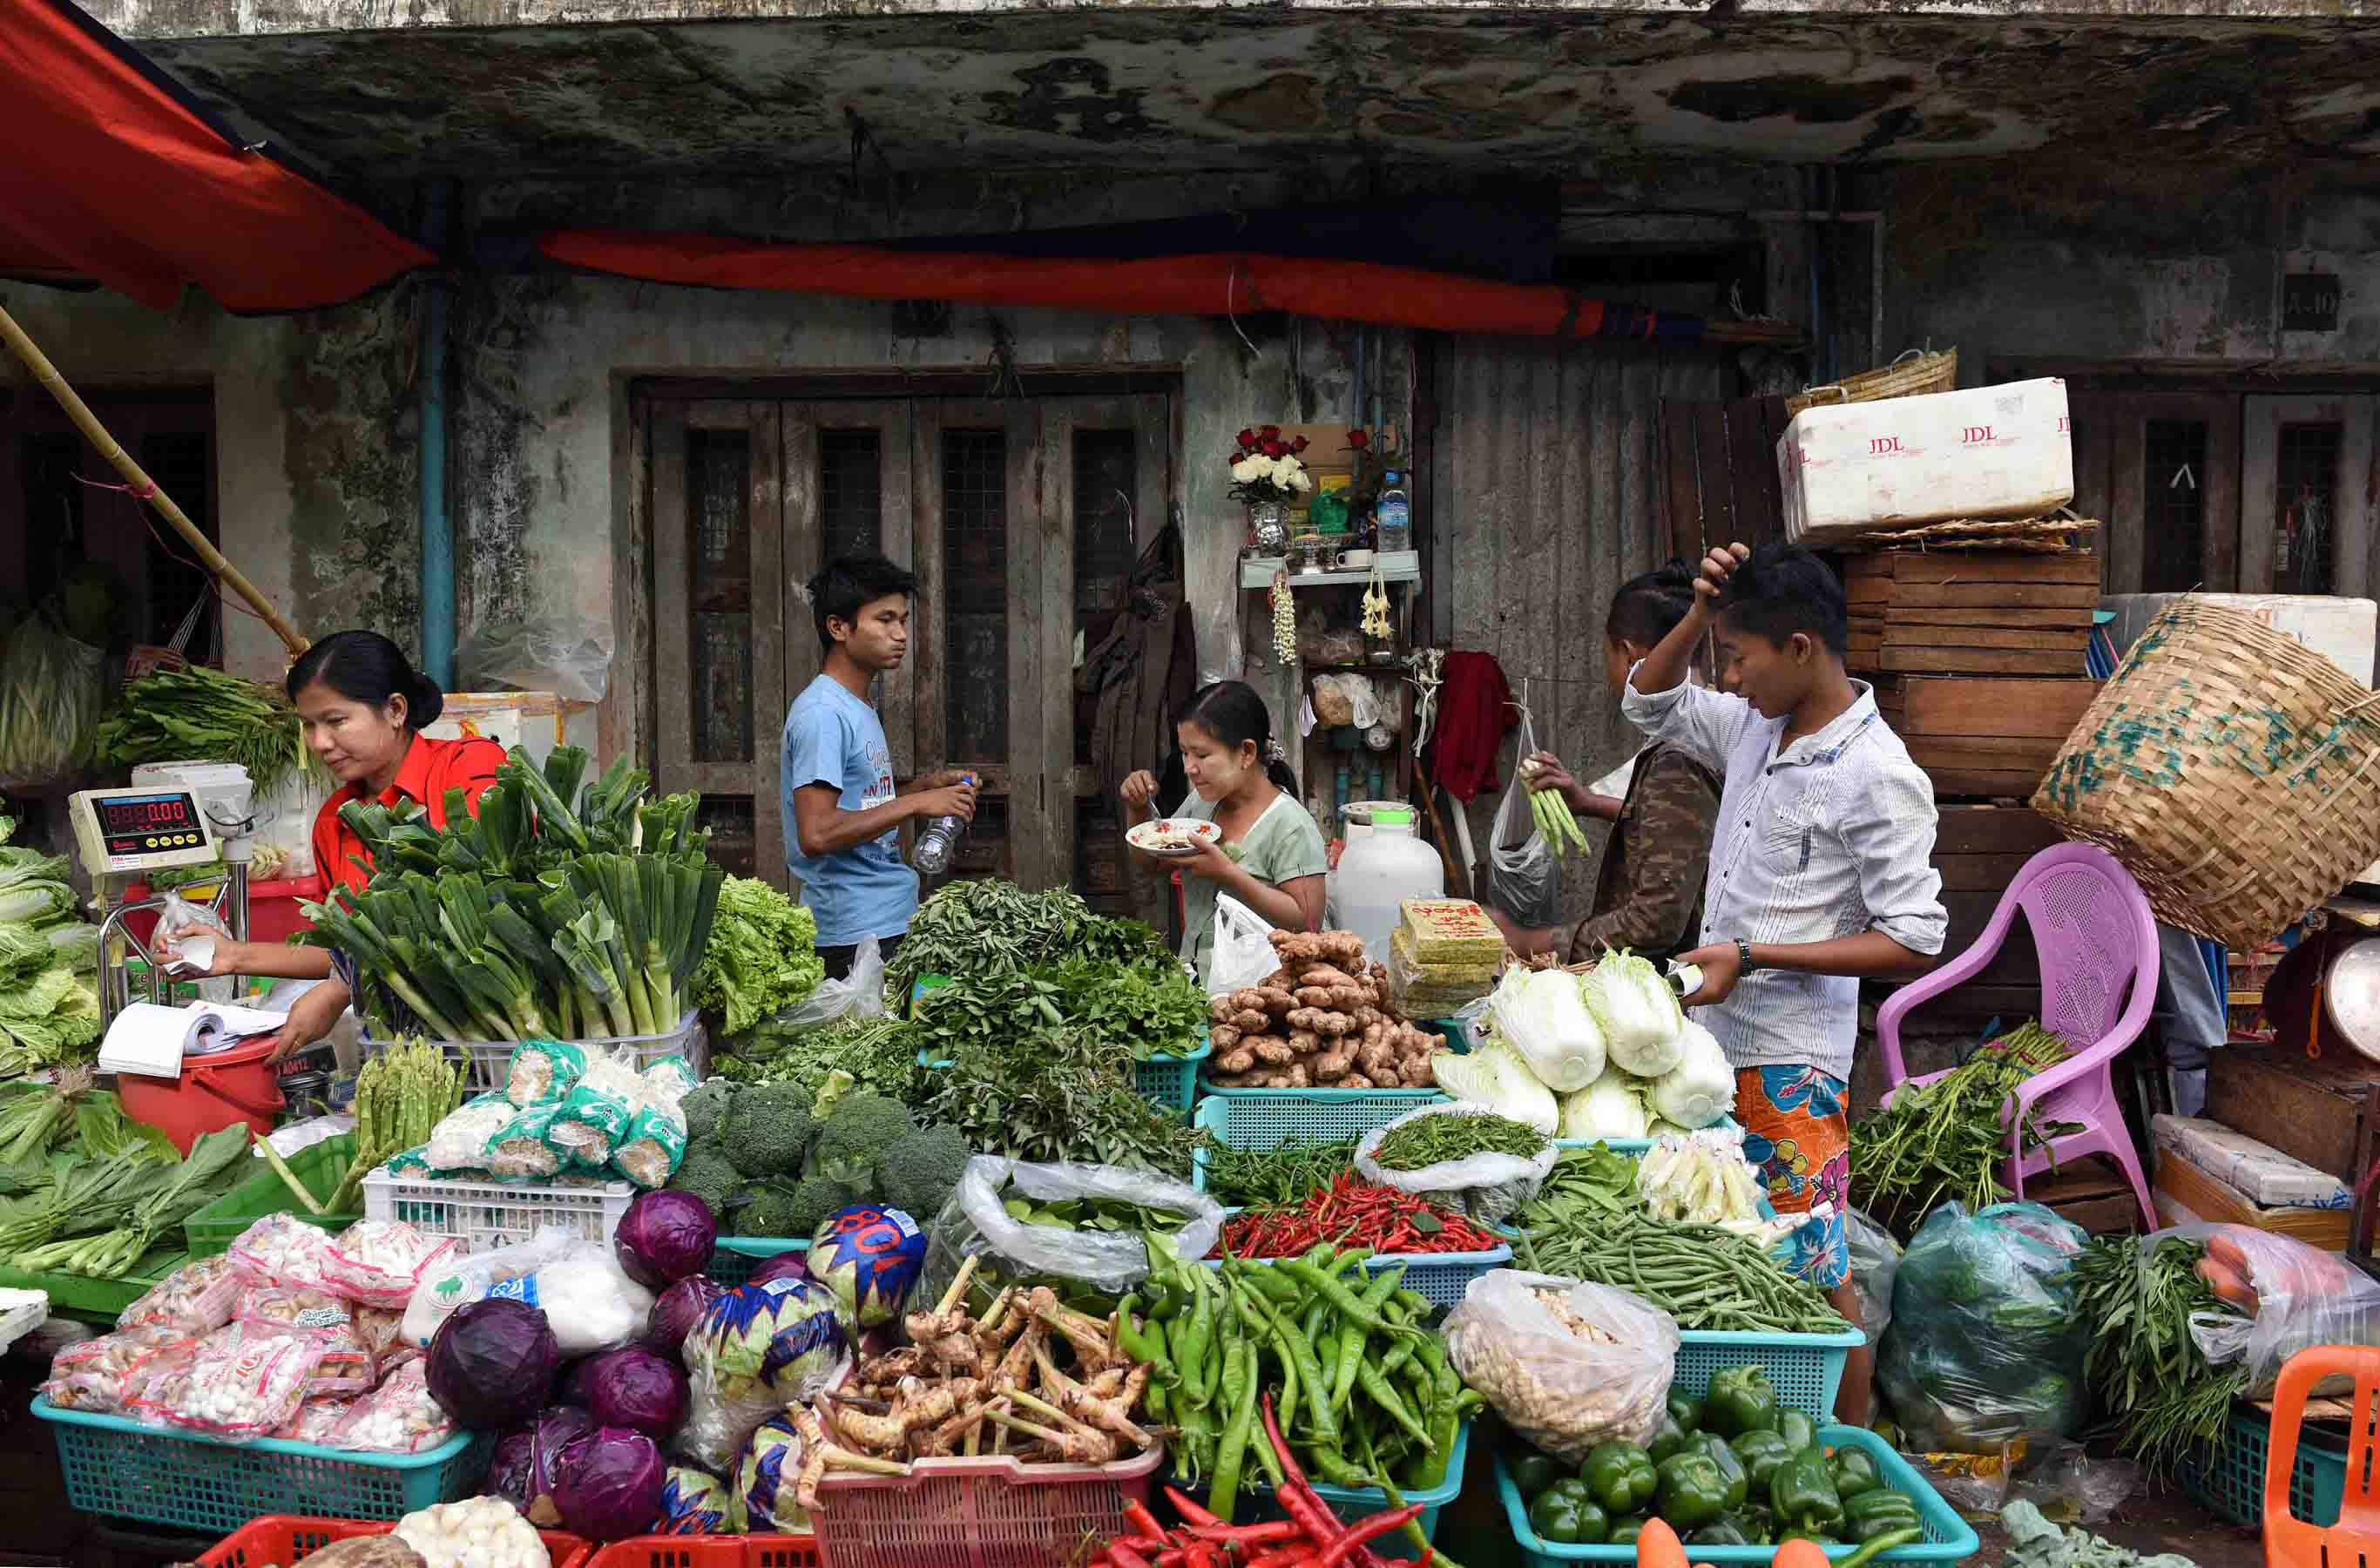 A market stall with fresh vegetables. (Photo: Naomi Hellmann)